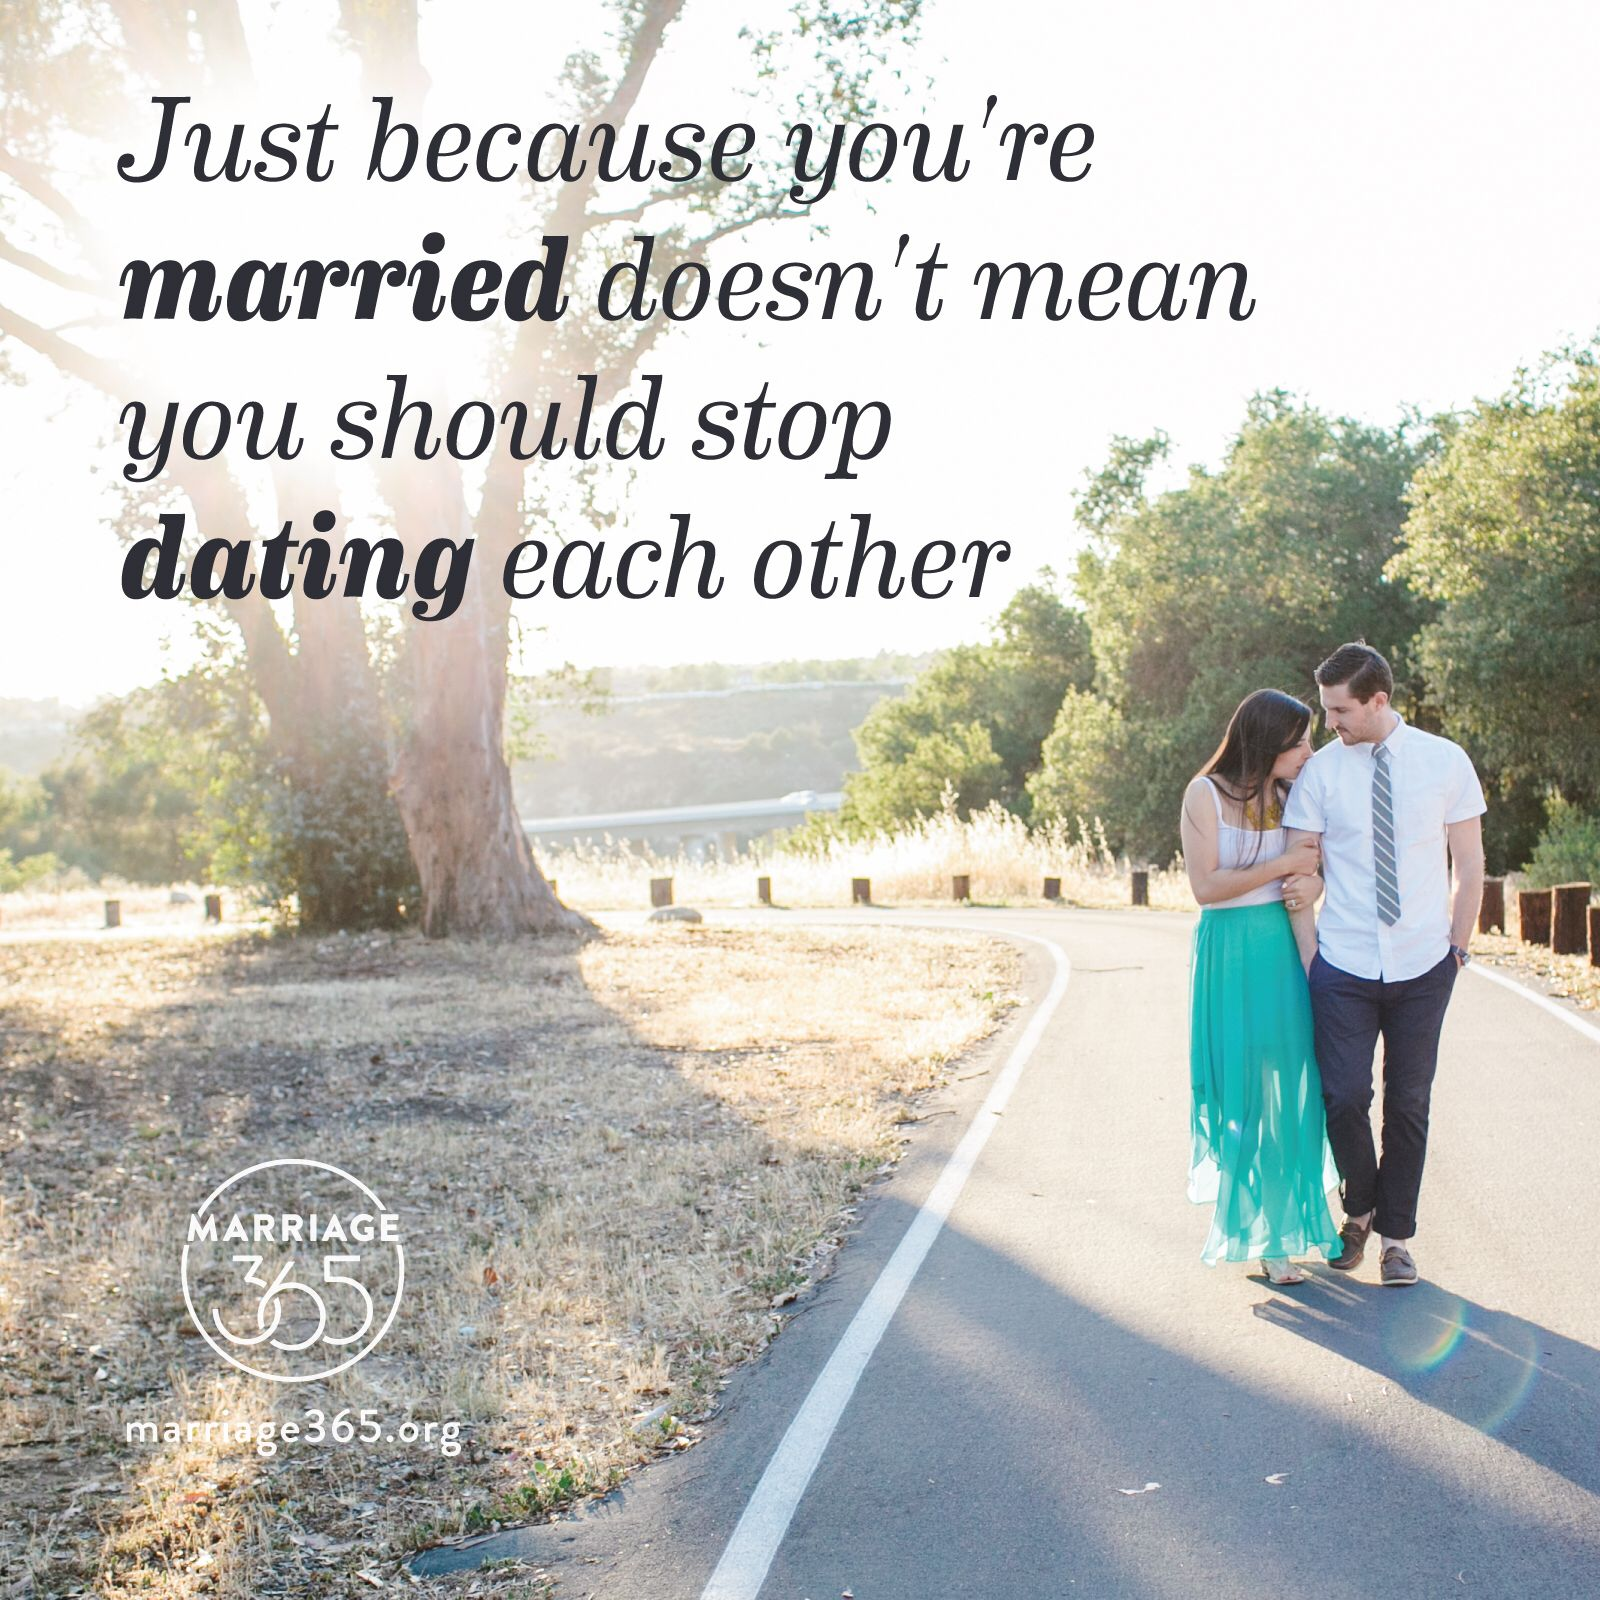 Never stop dating your spouse. Check out www.marriage365